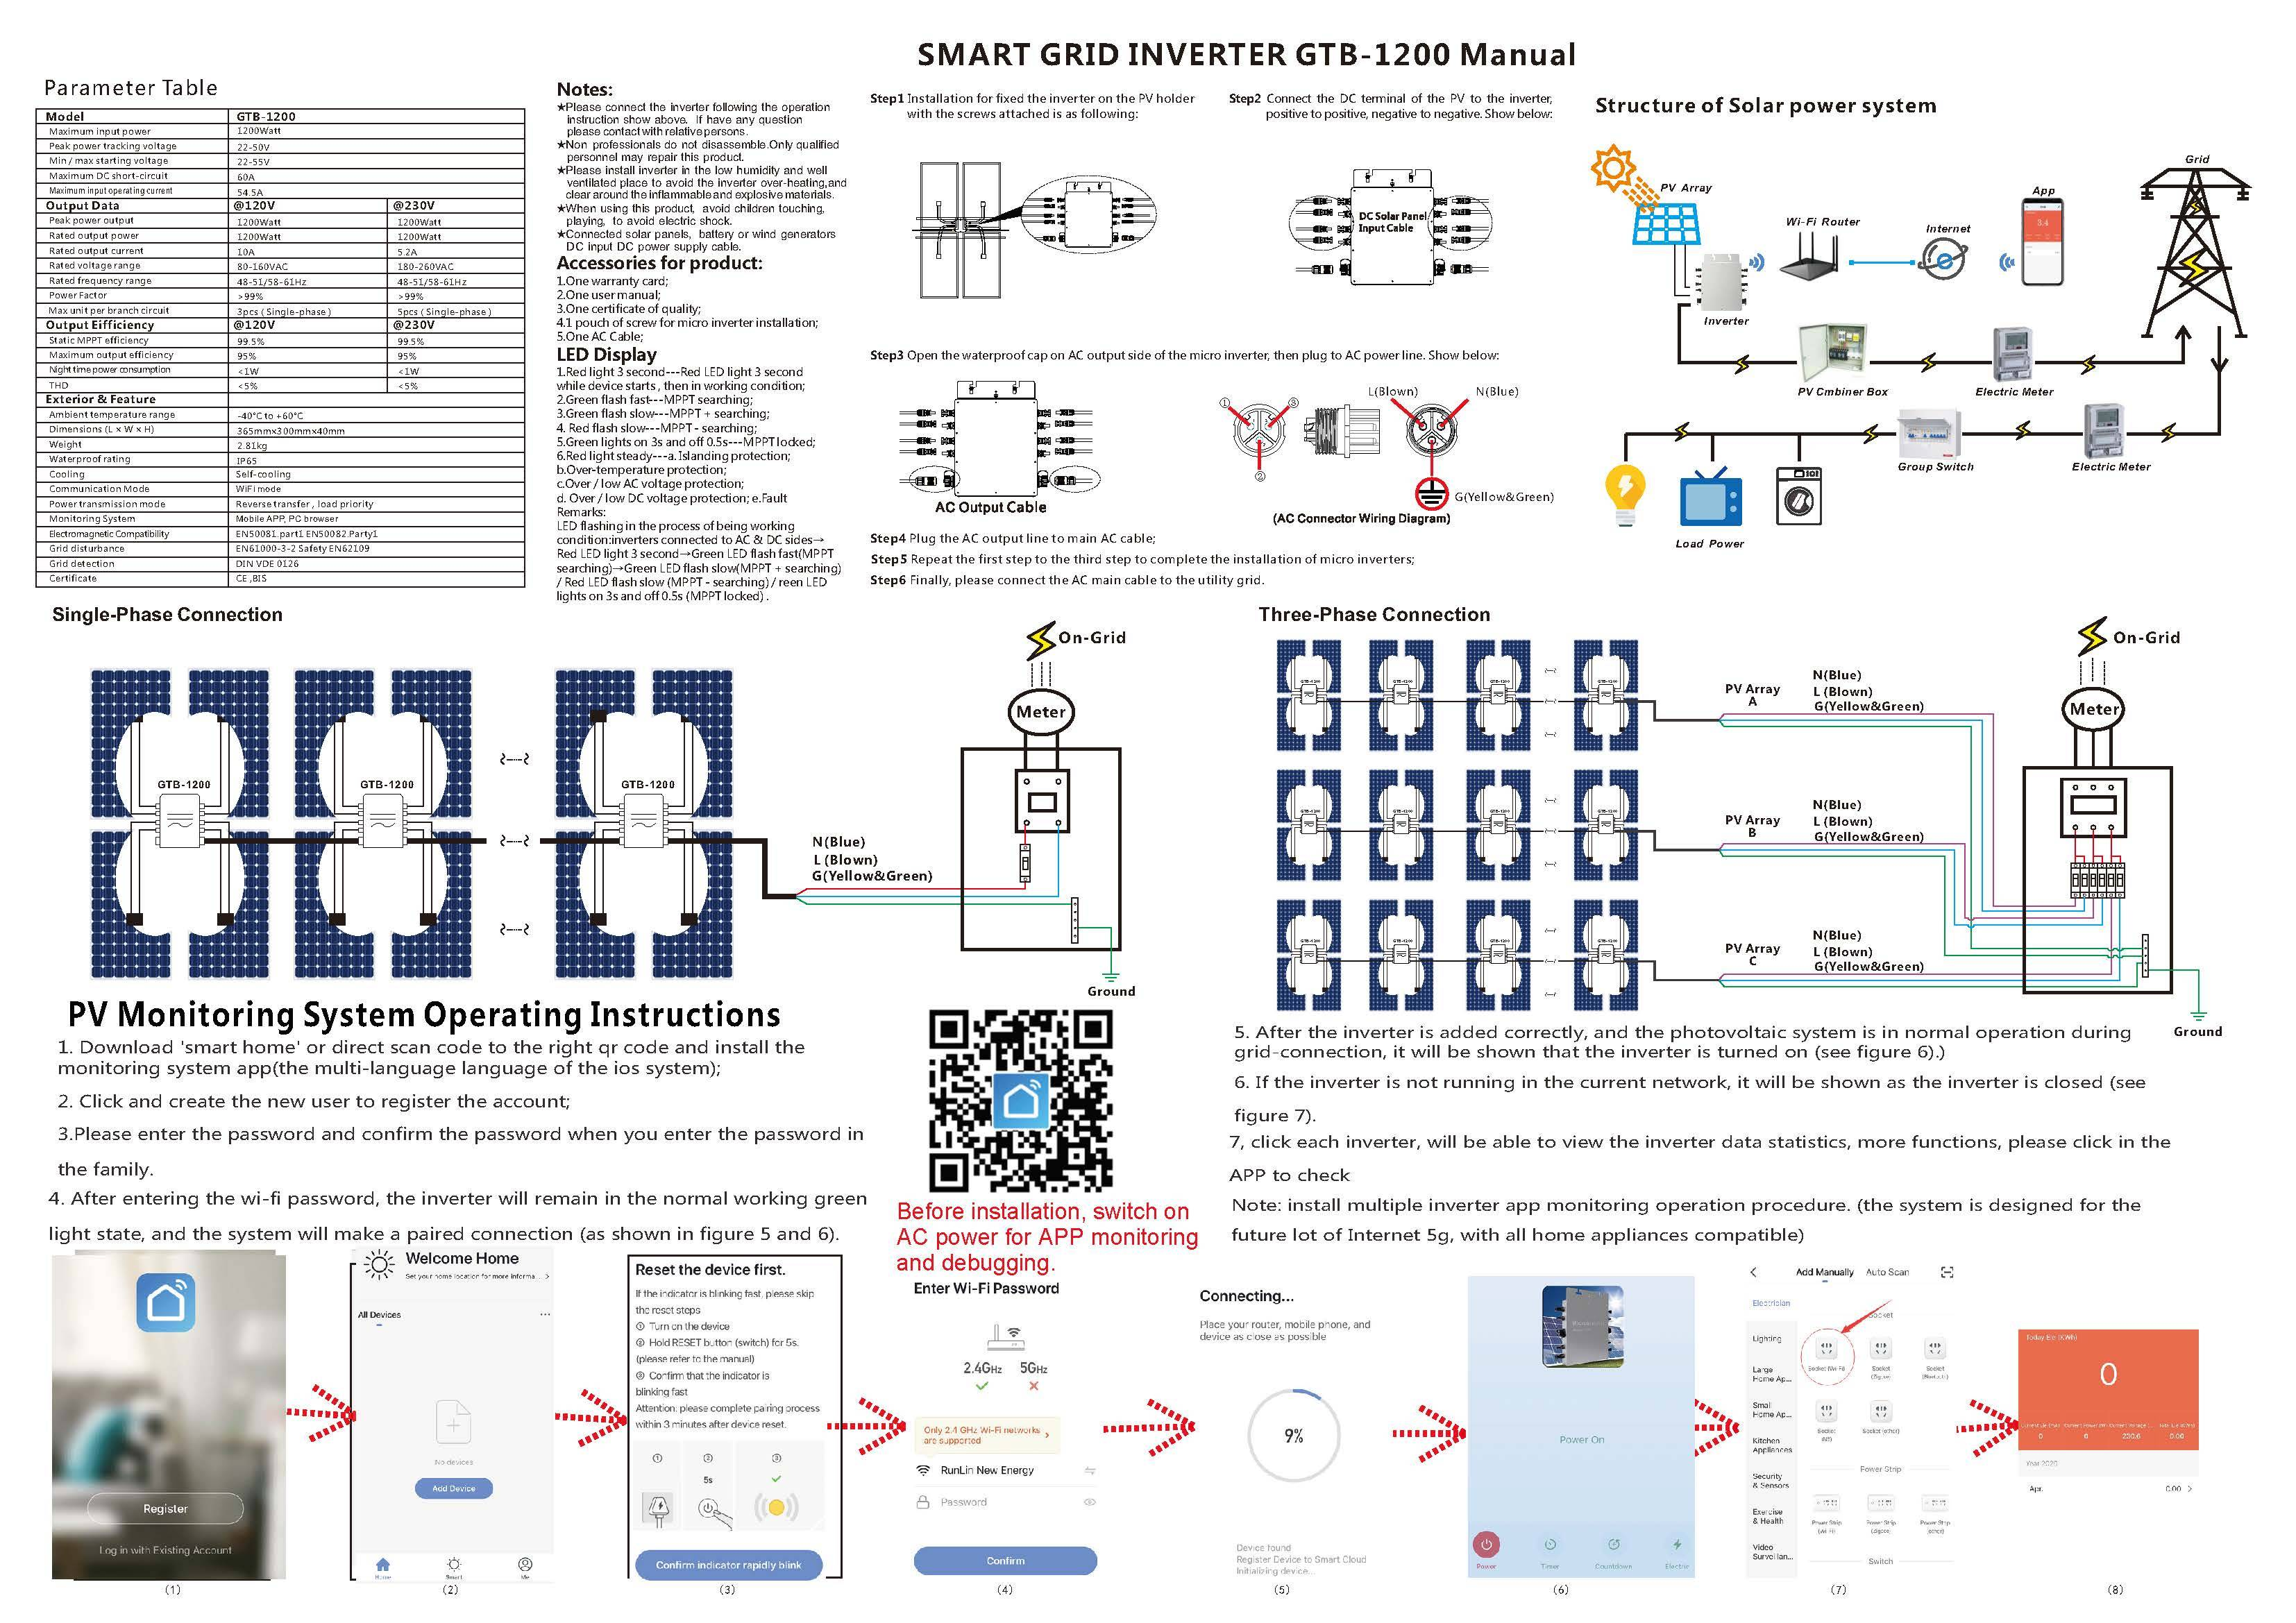 Datasheet of GTB-1200 Smart Grid inverter